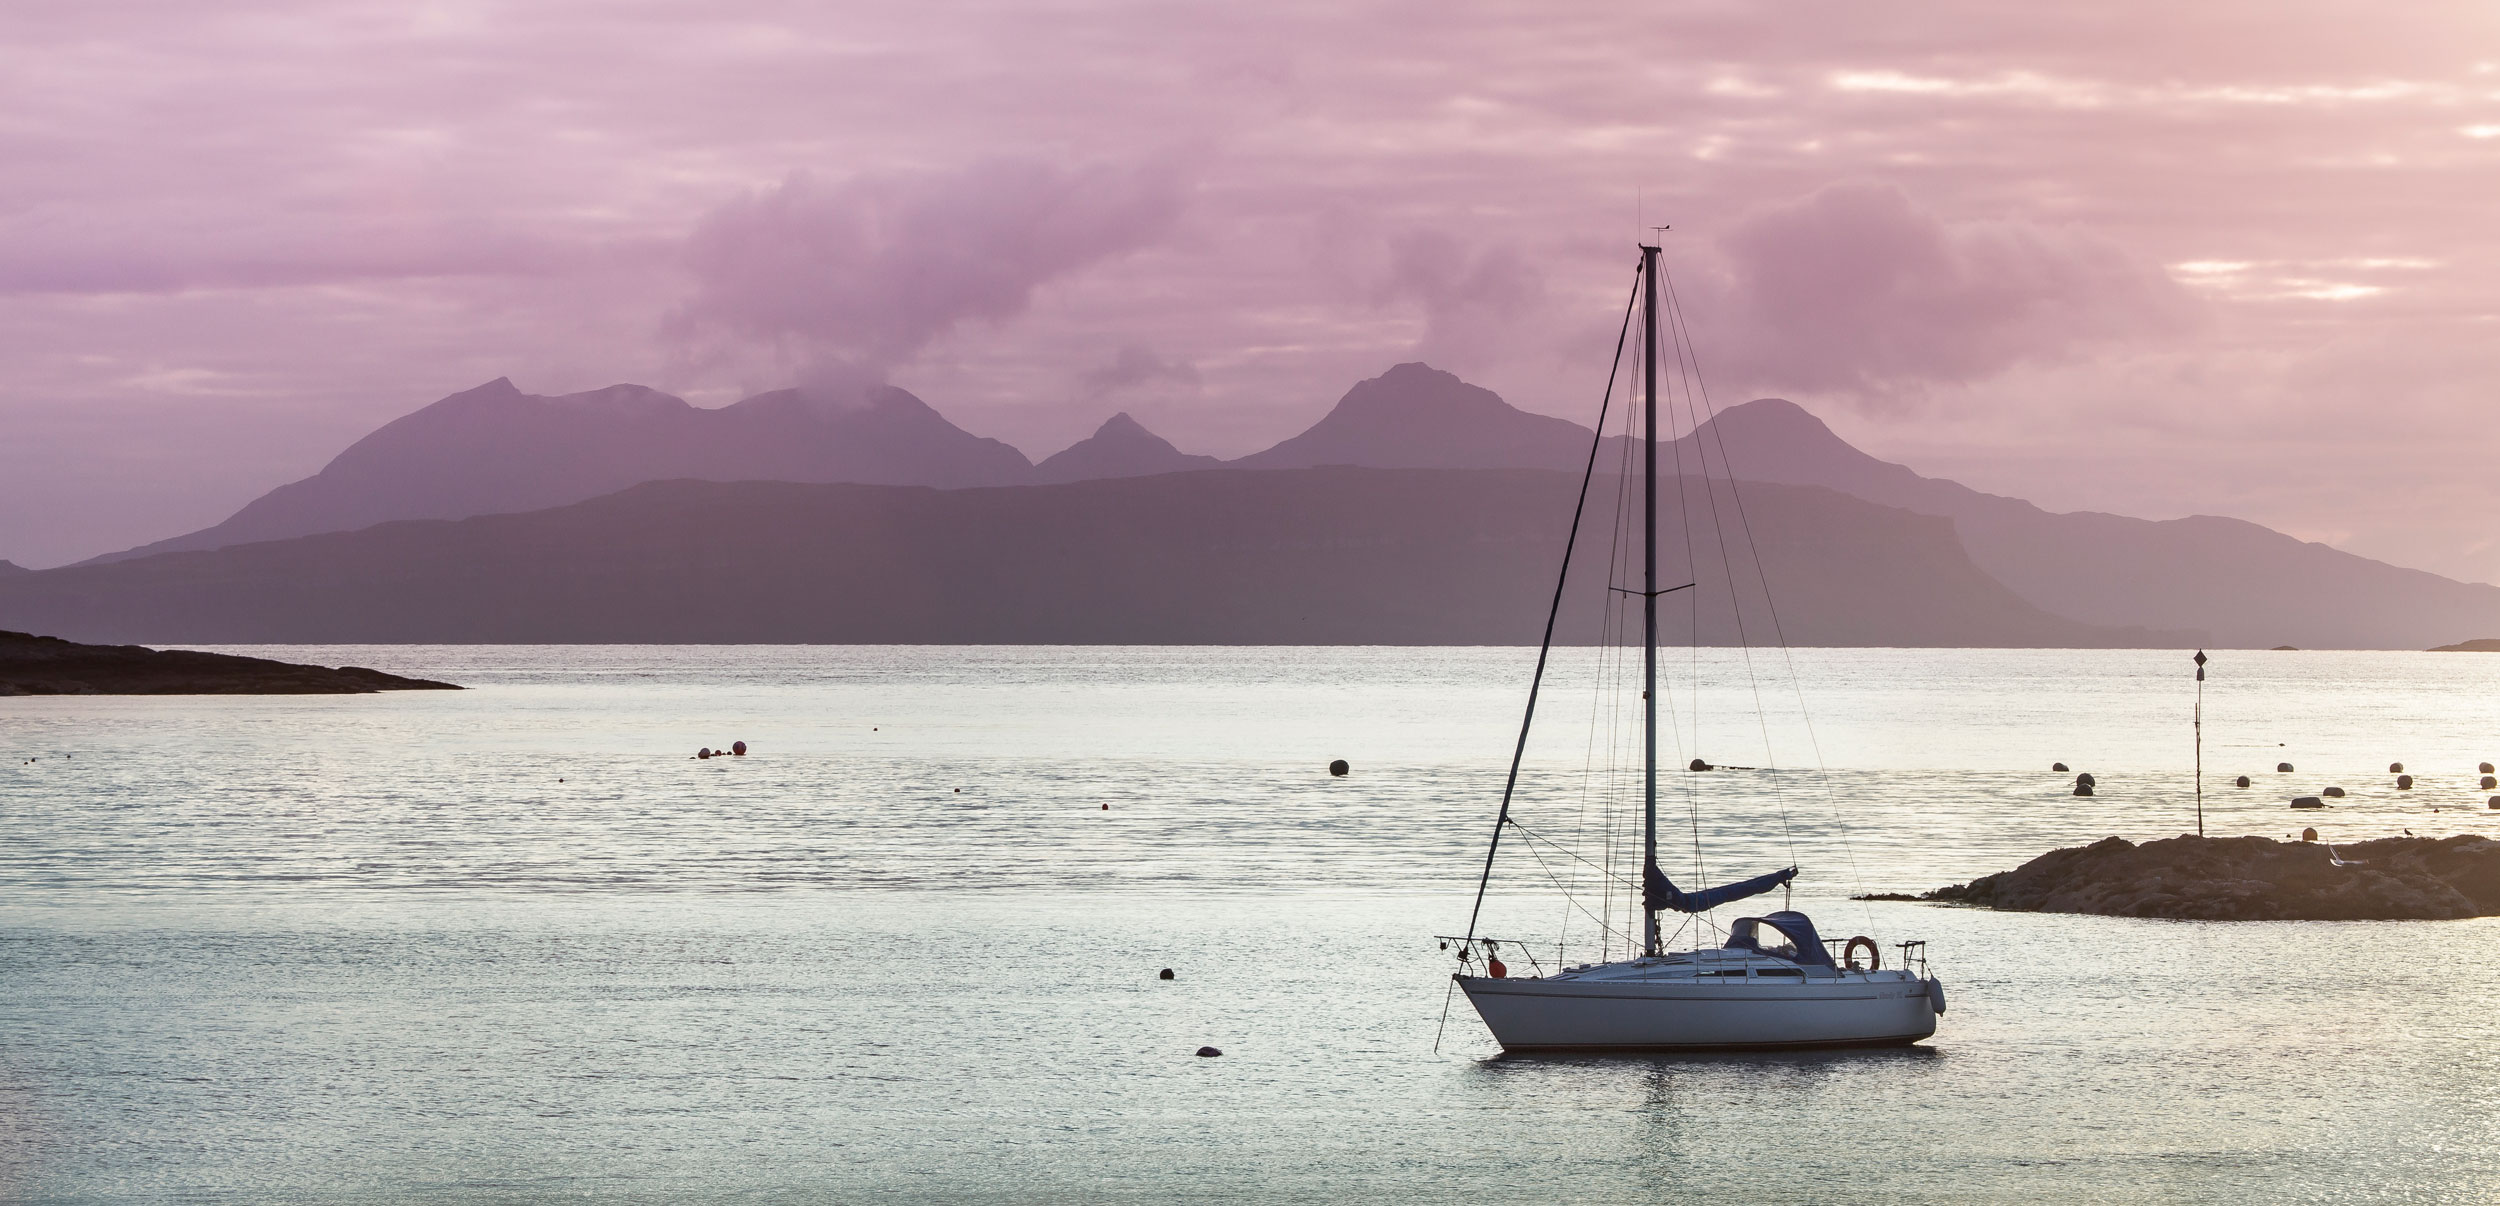 The Isle of Rum from Glenuig Bay and Loch Ailort on the mainland  (Jan Holm/Shutterstock)